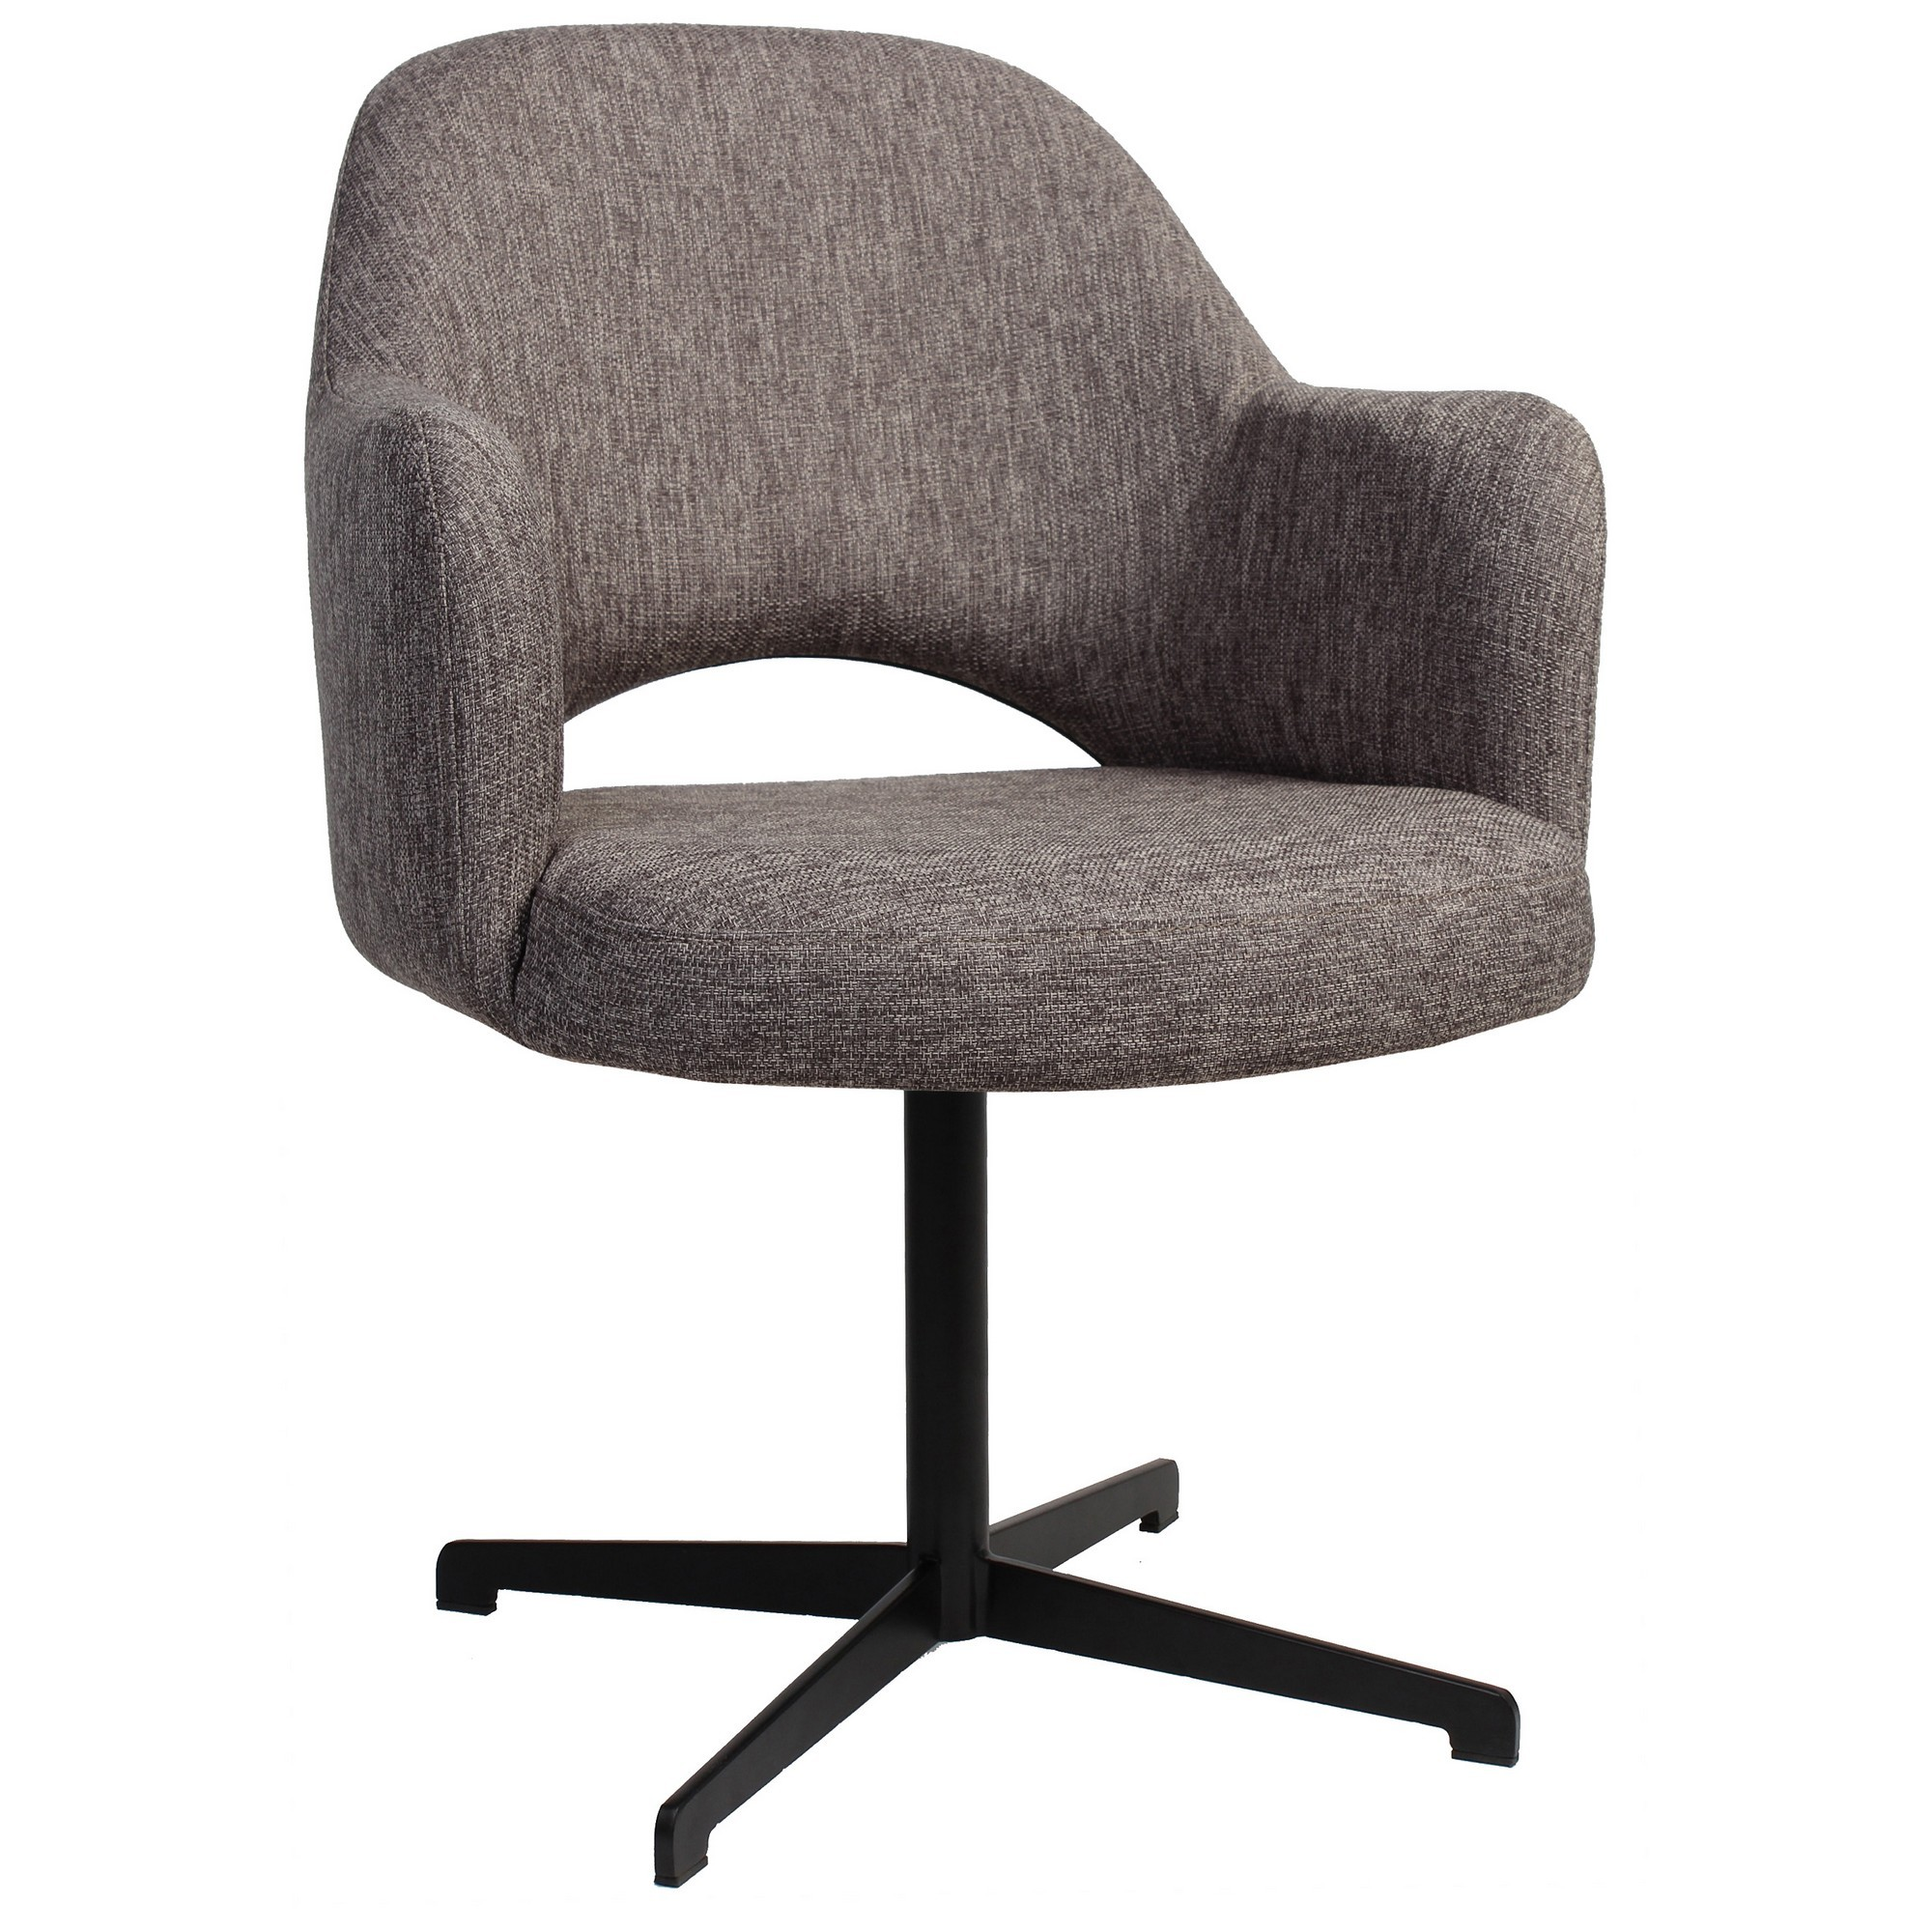 Albury Commercial Grade Fabric Dining Armchair, Metal Blade Leg, Ash Grey / Black